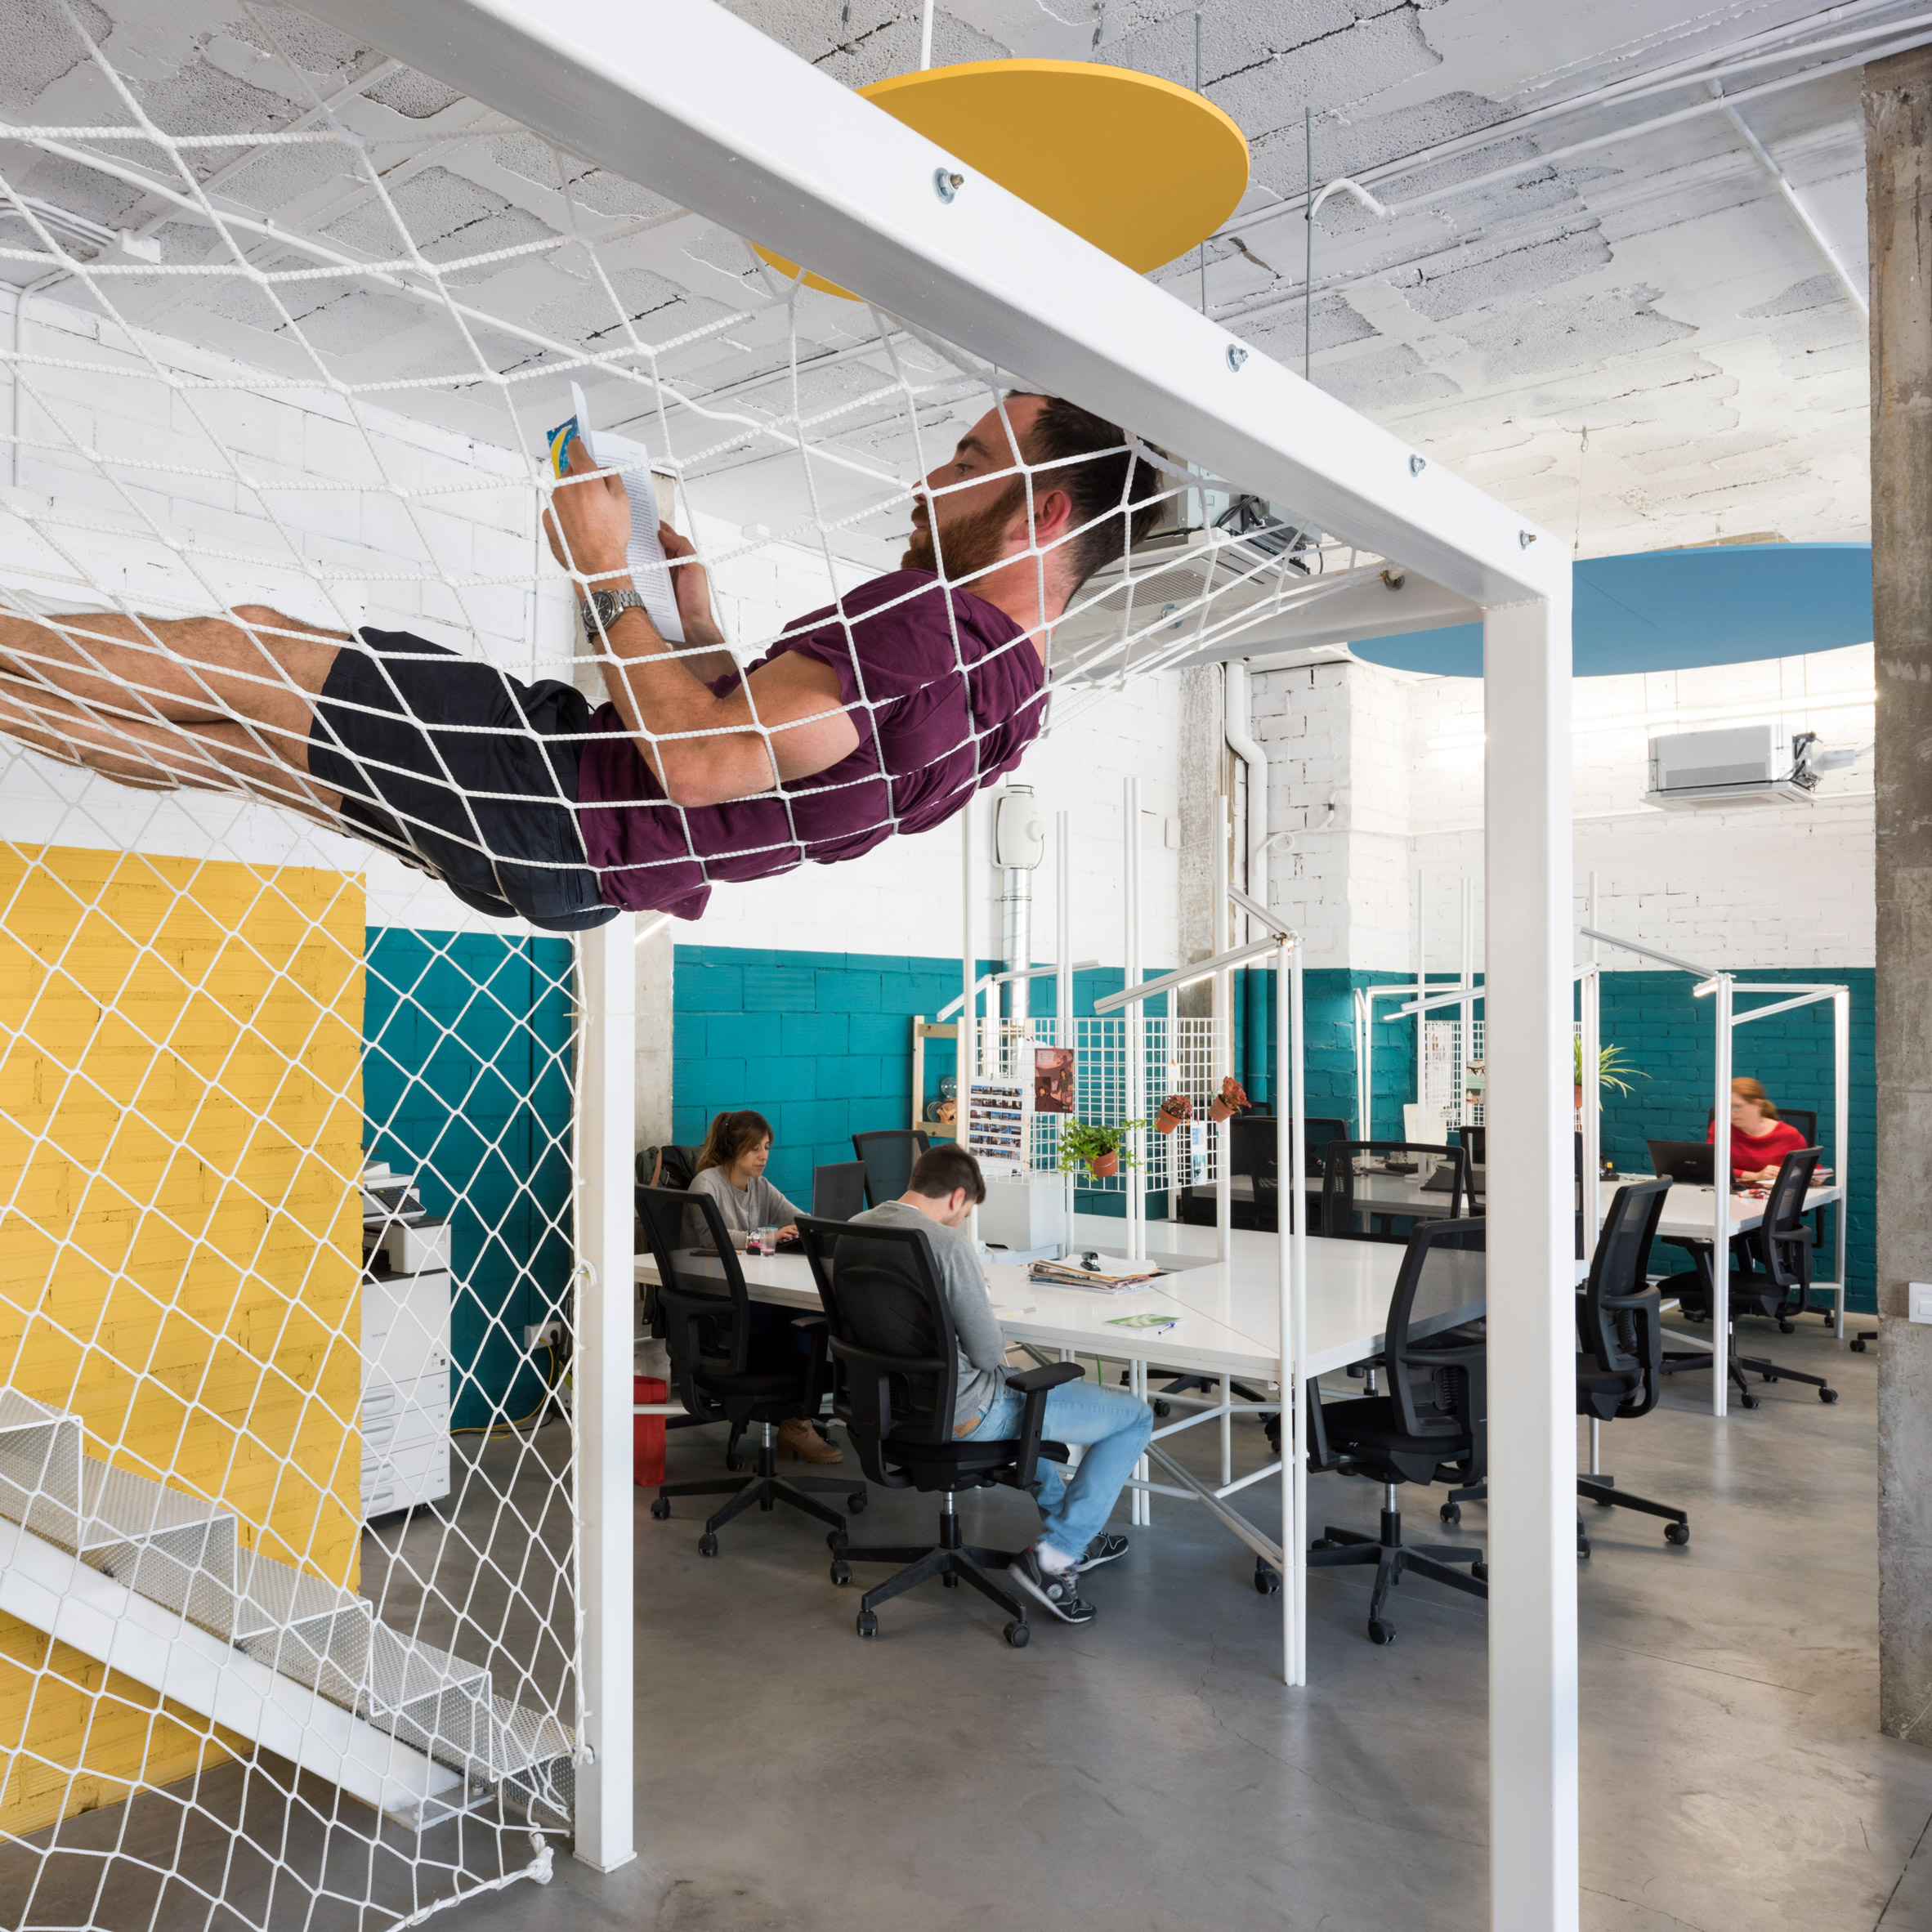 Sinergics Co Working Spaces In Barcelona Showcase Low Budget Furniture Solutions